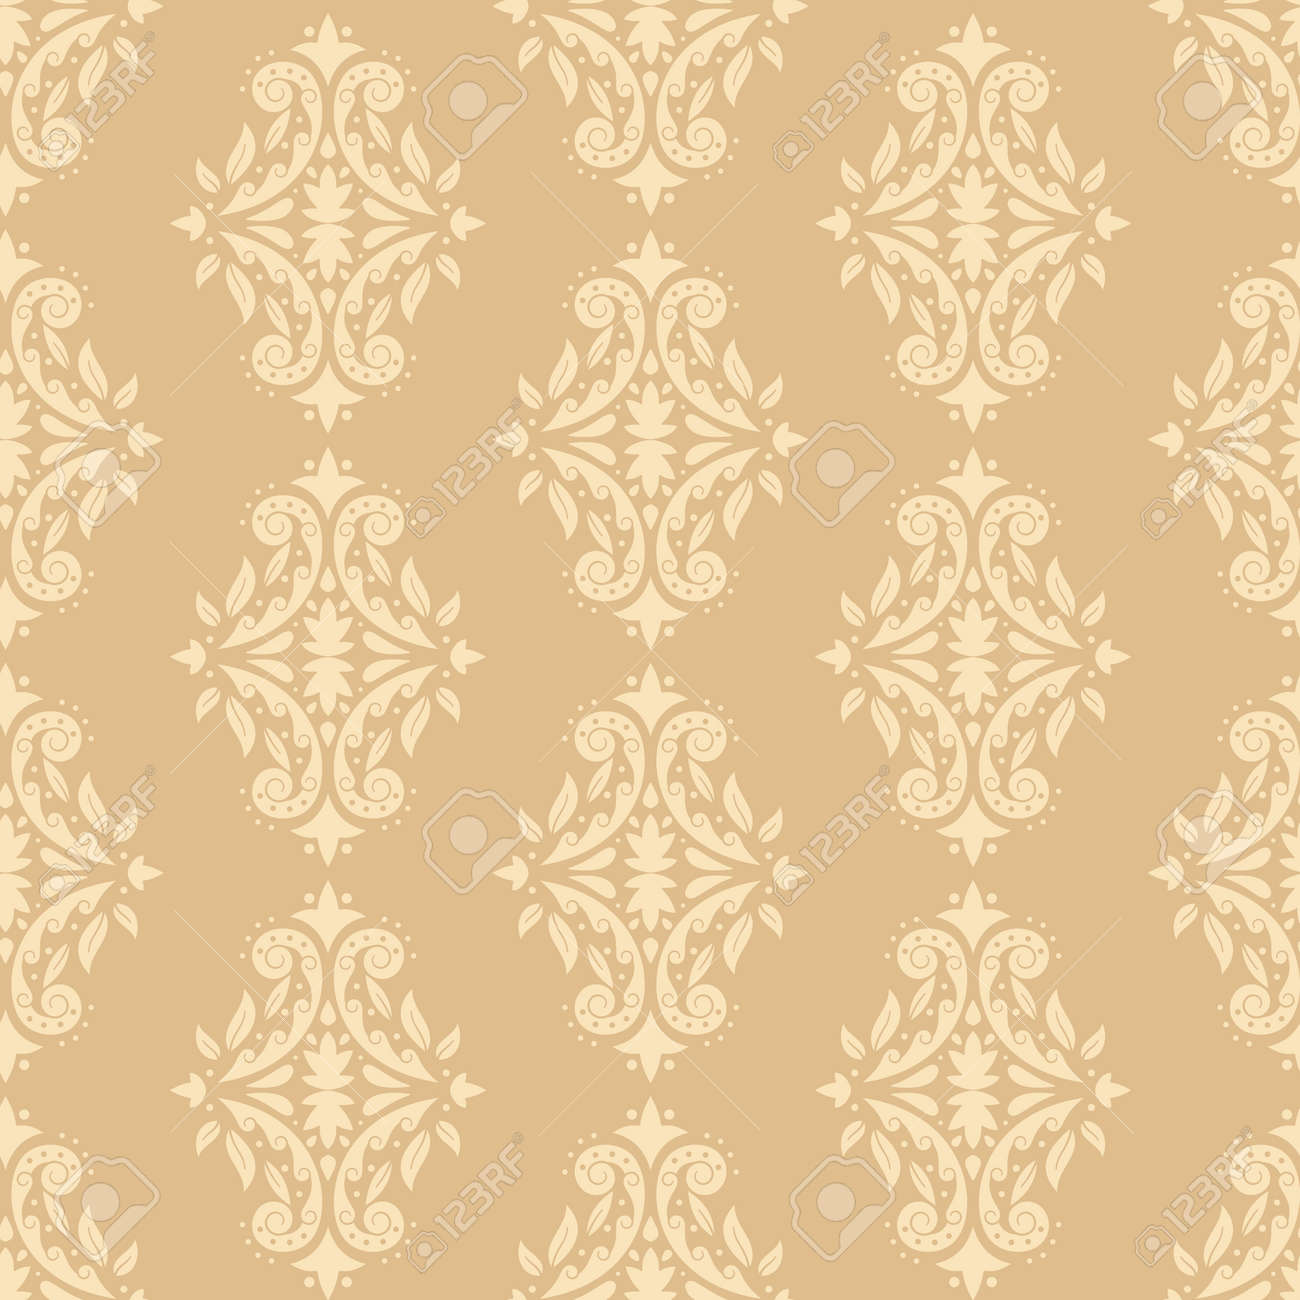 Vintage wallpaper vector seamless pattern. Background for wallpaper, wrapping, packing and backdrop. - 170855144